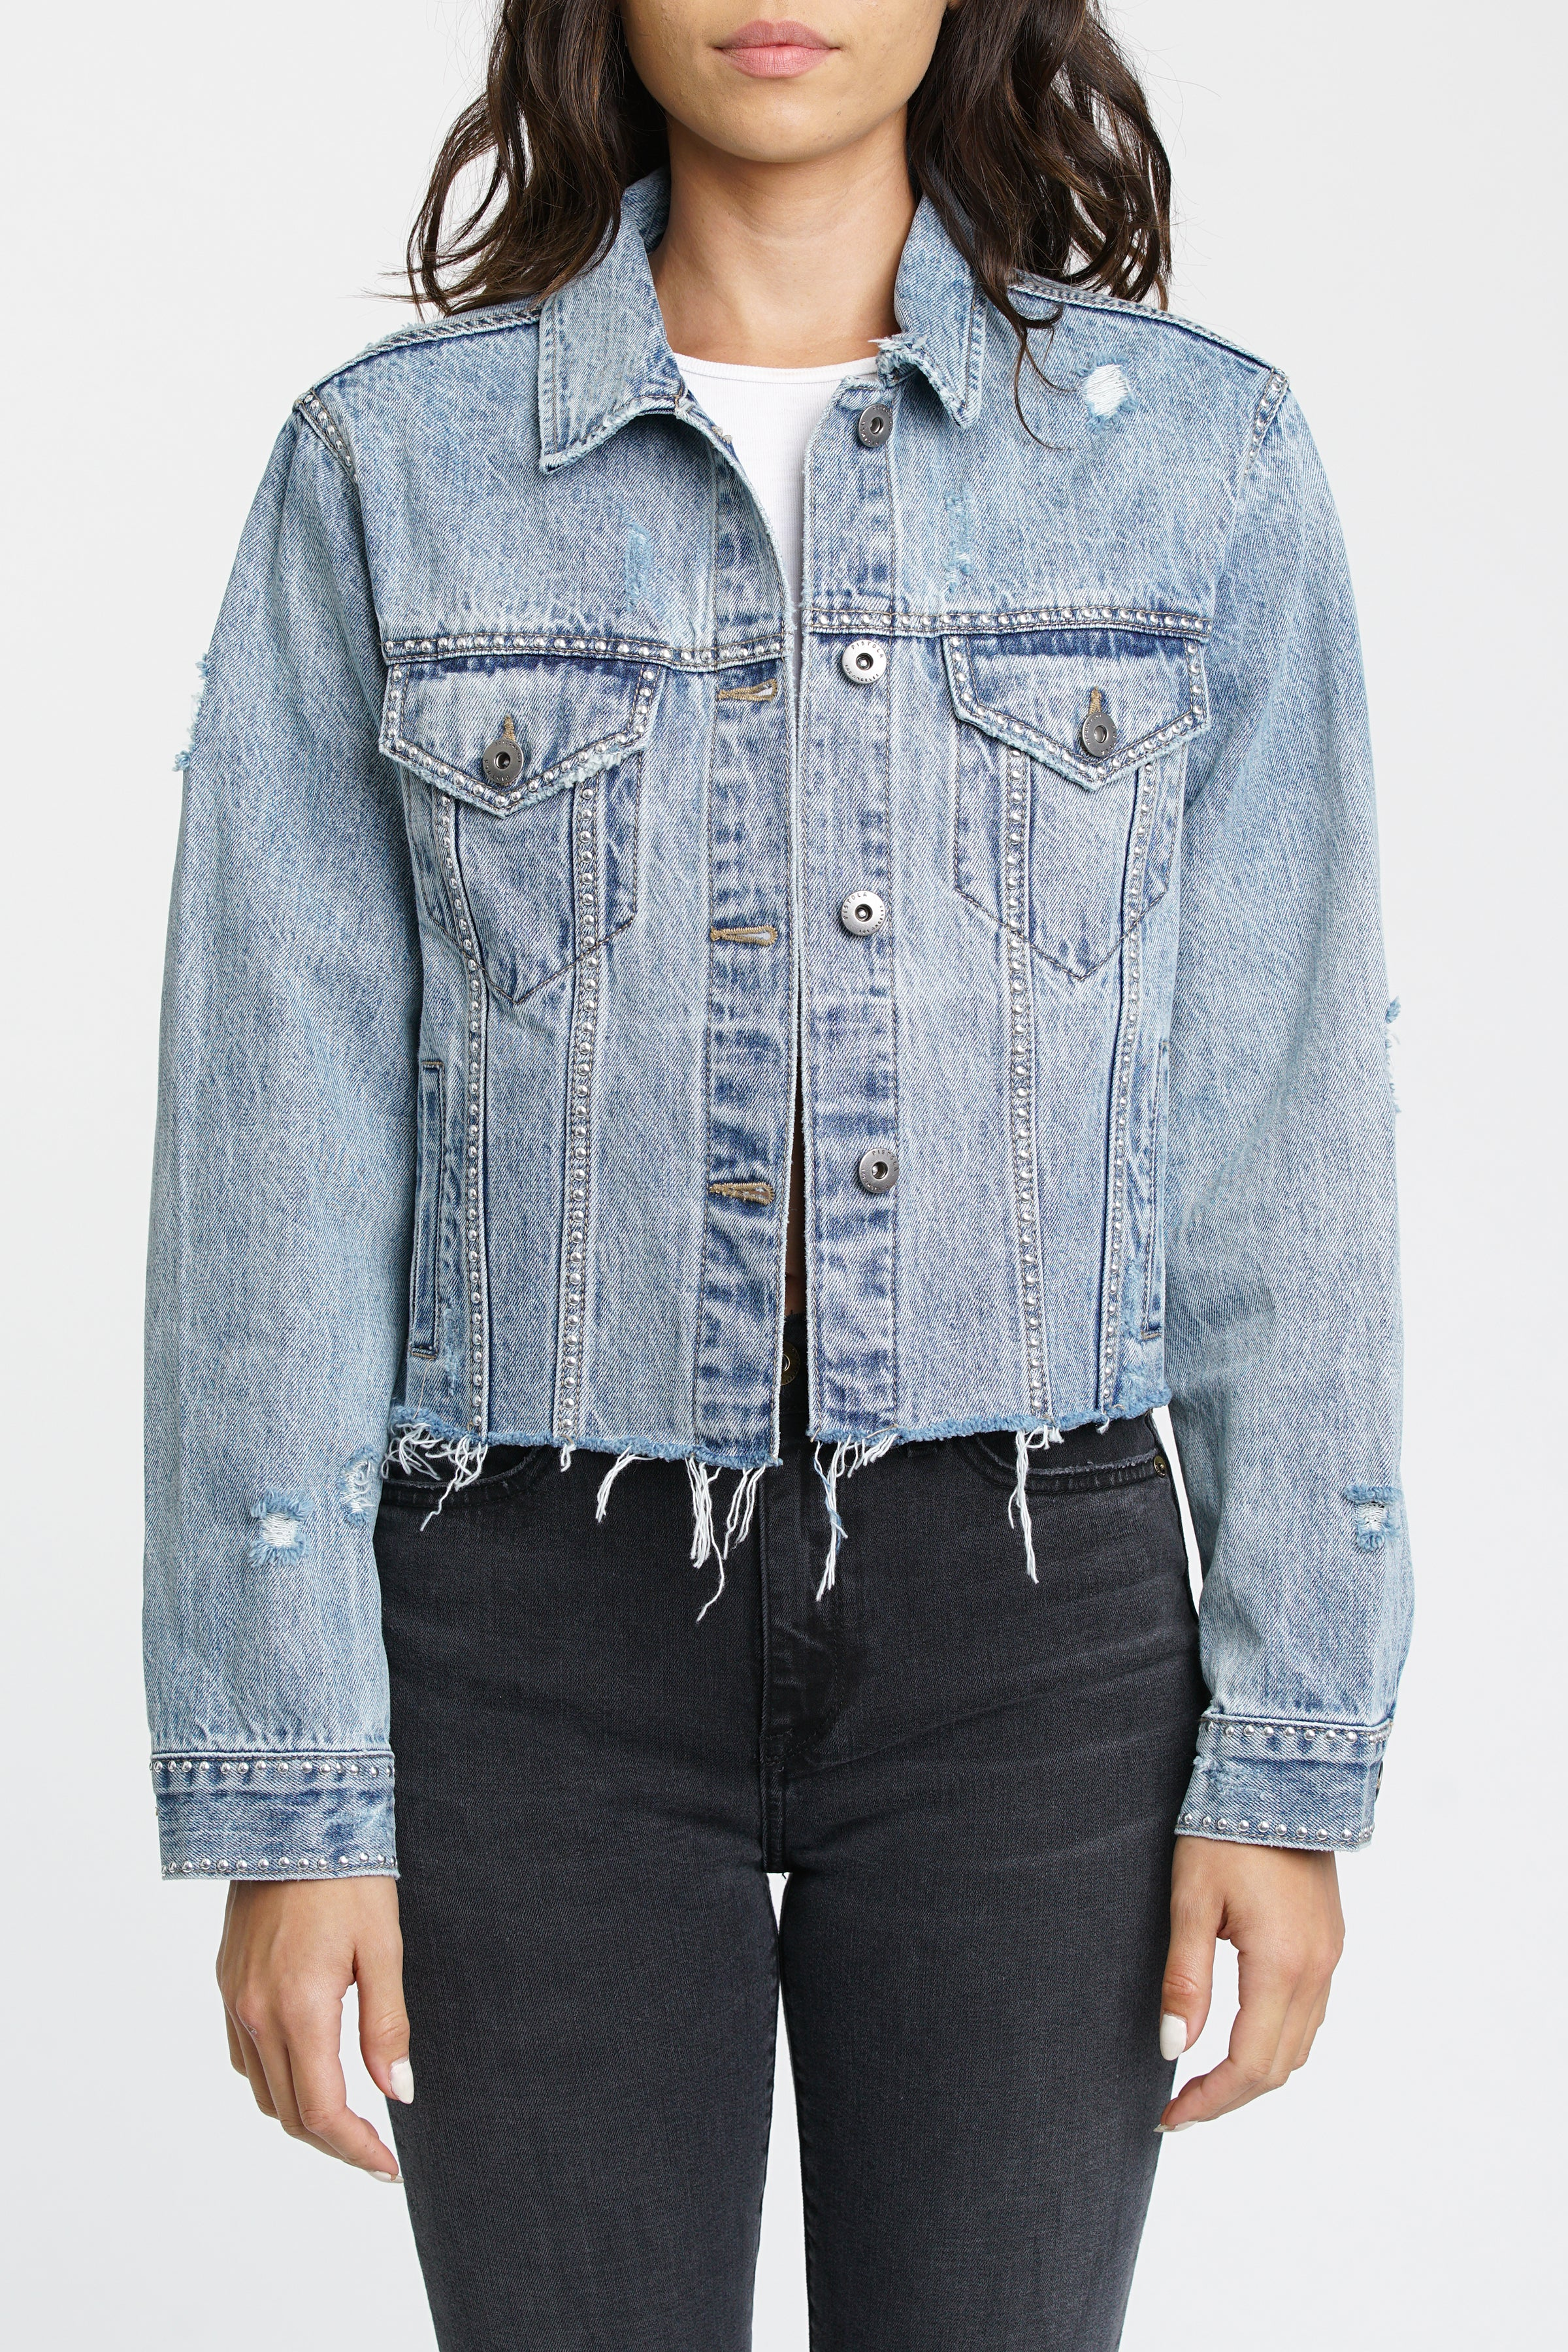 Naya Crop Boyfriend Denim Jacket - Miami